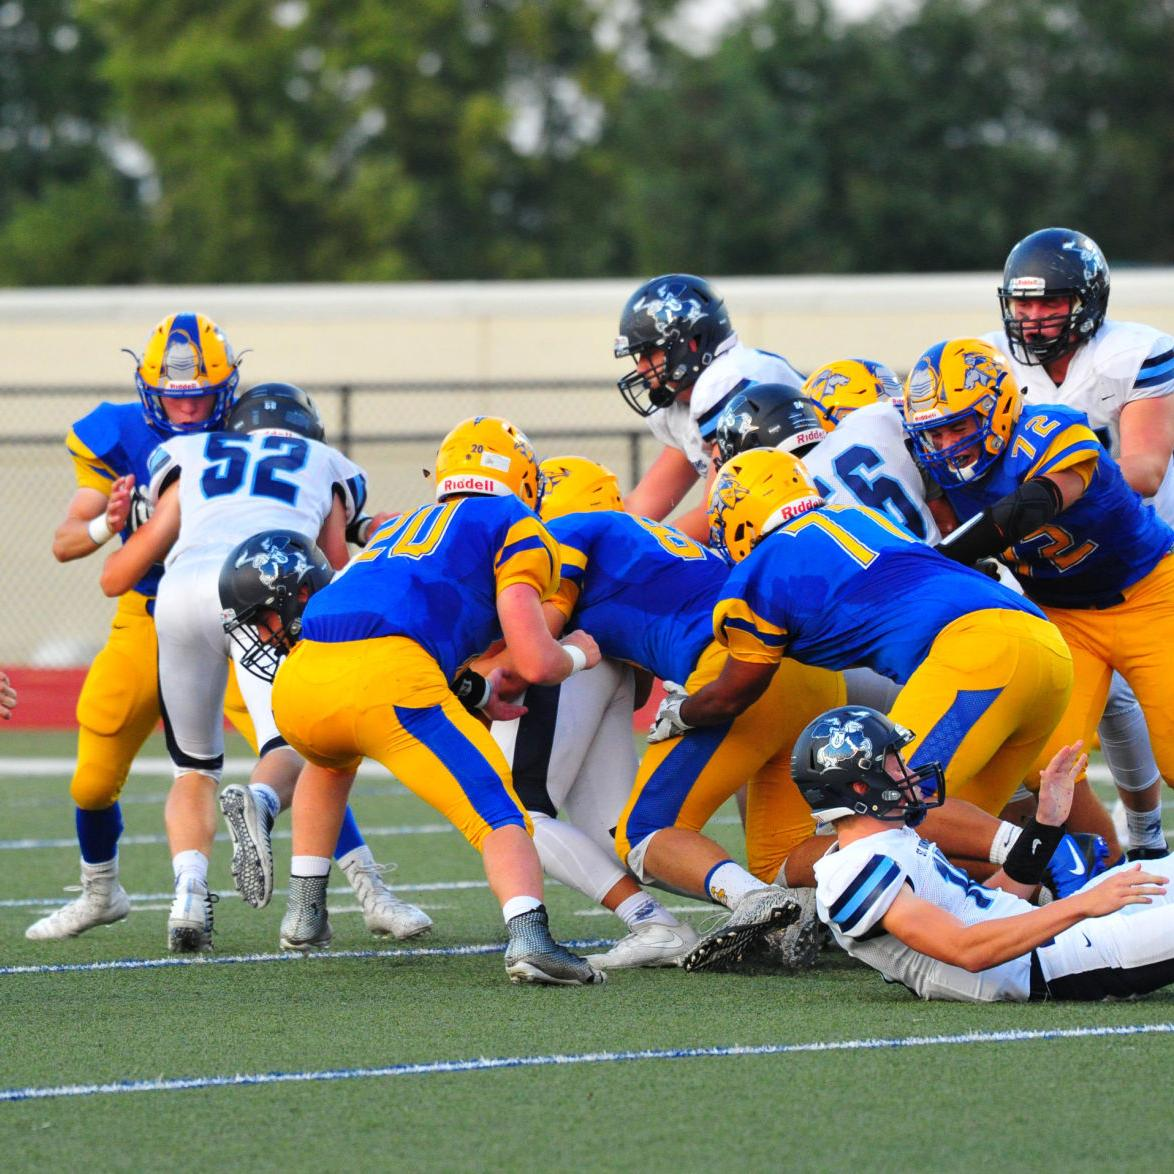 Week 4 Football — St. Dominic at Borgia